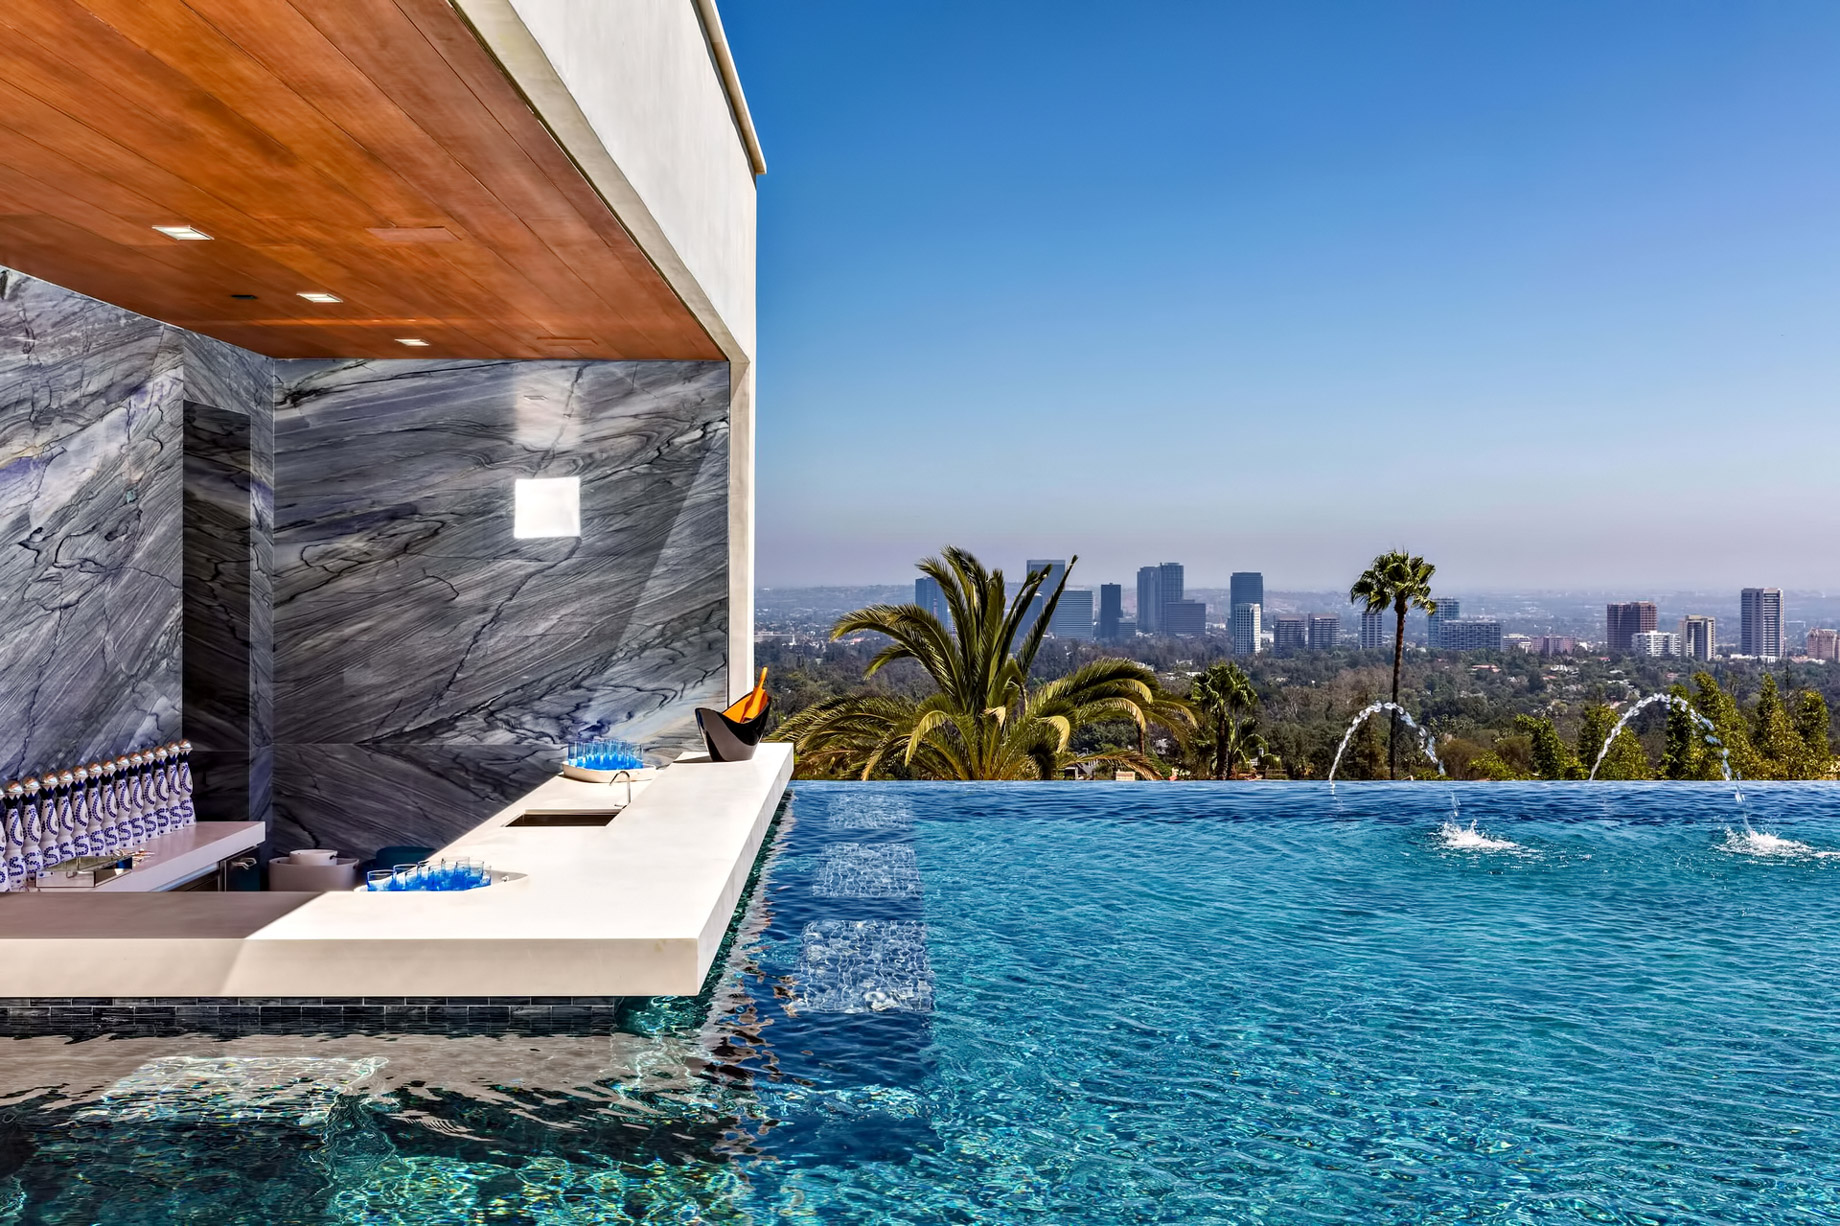 Luxury Residence - 924 Bel Air Rd, Los Angeles, CA, USA